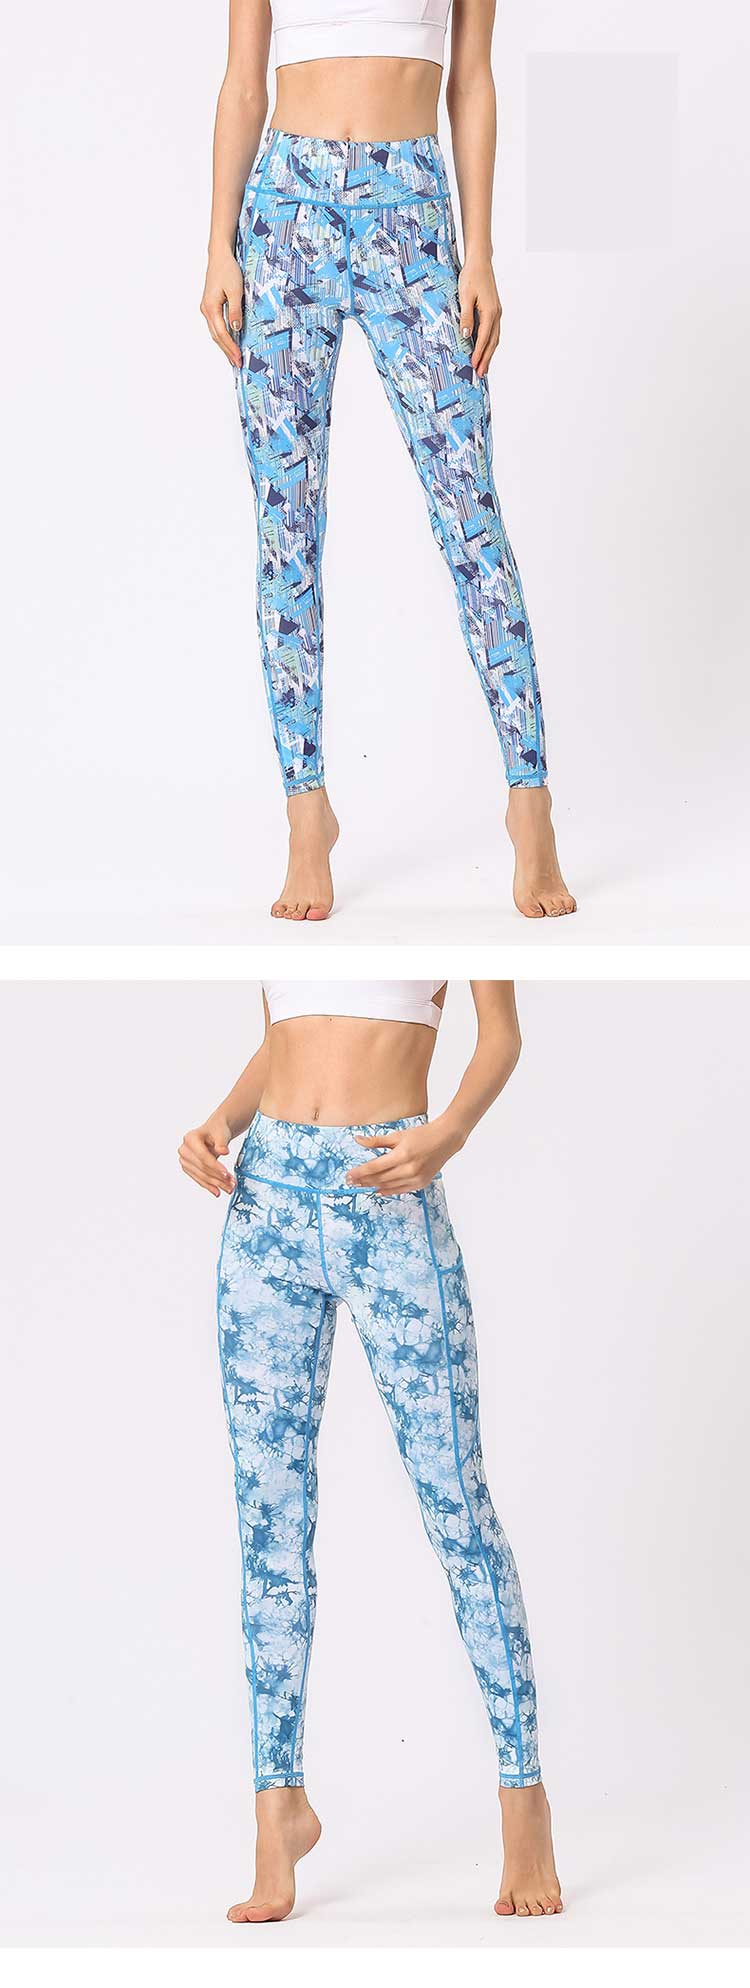 This-camouflage-yoga-pants-can-meet-the-popular-needs-of-modern-women